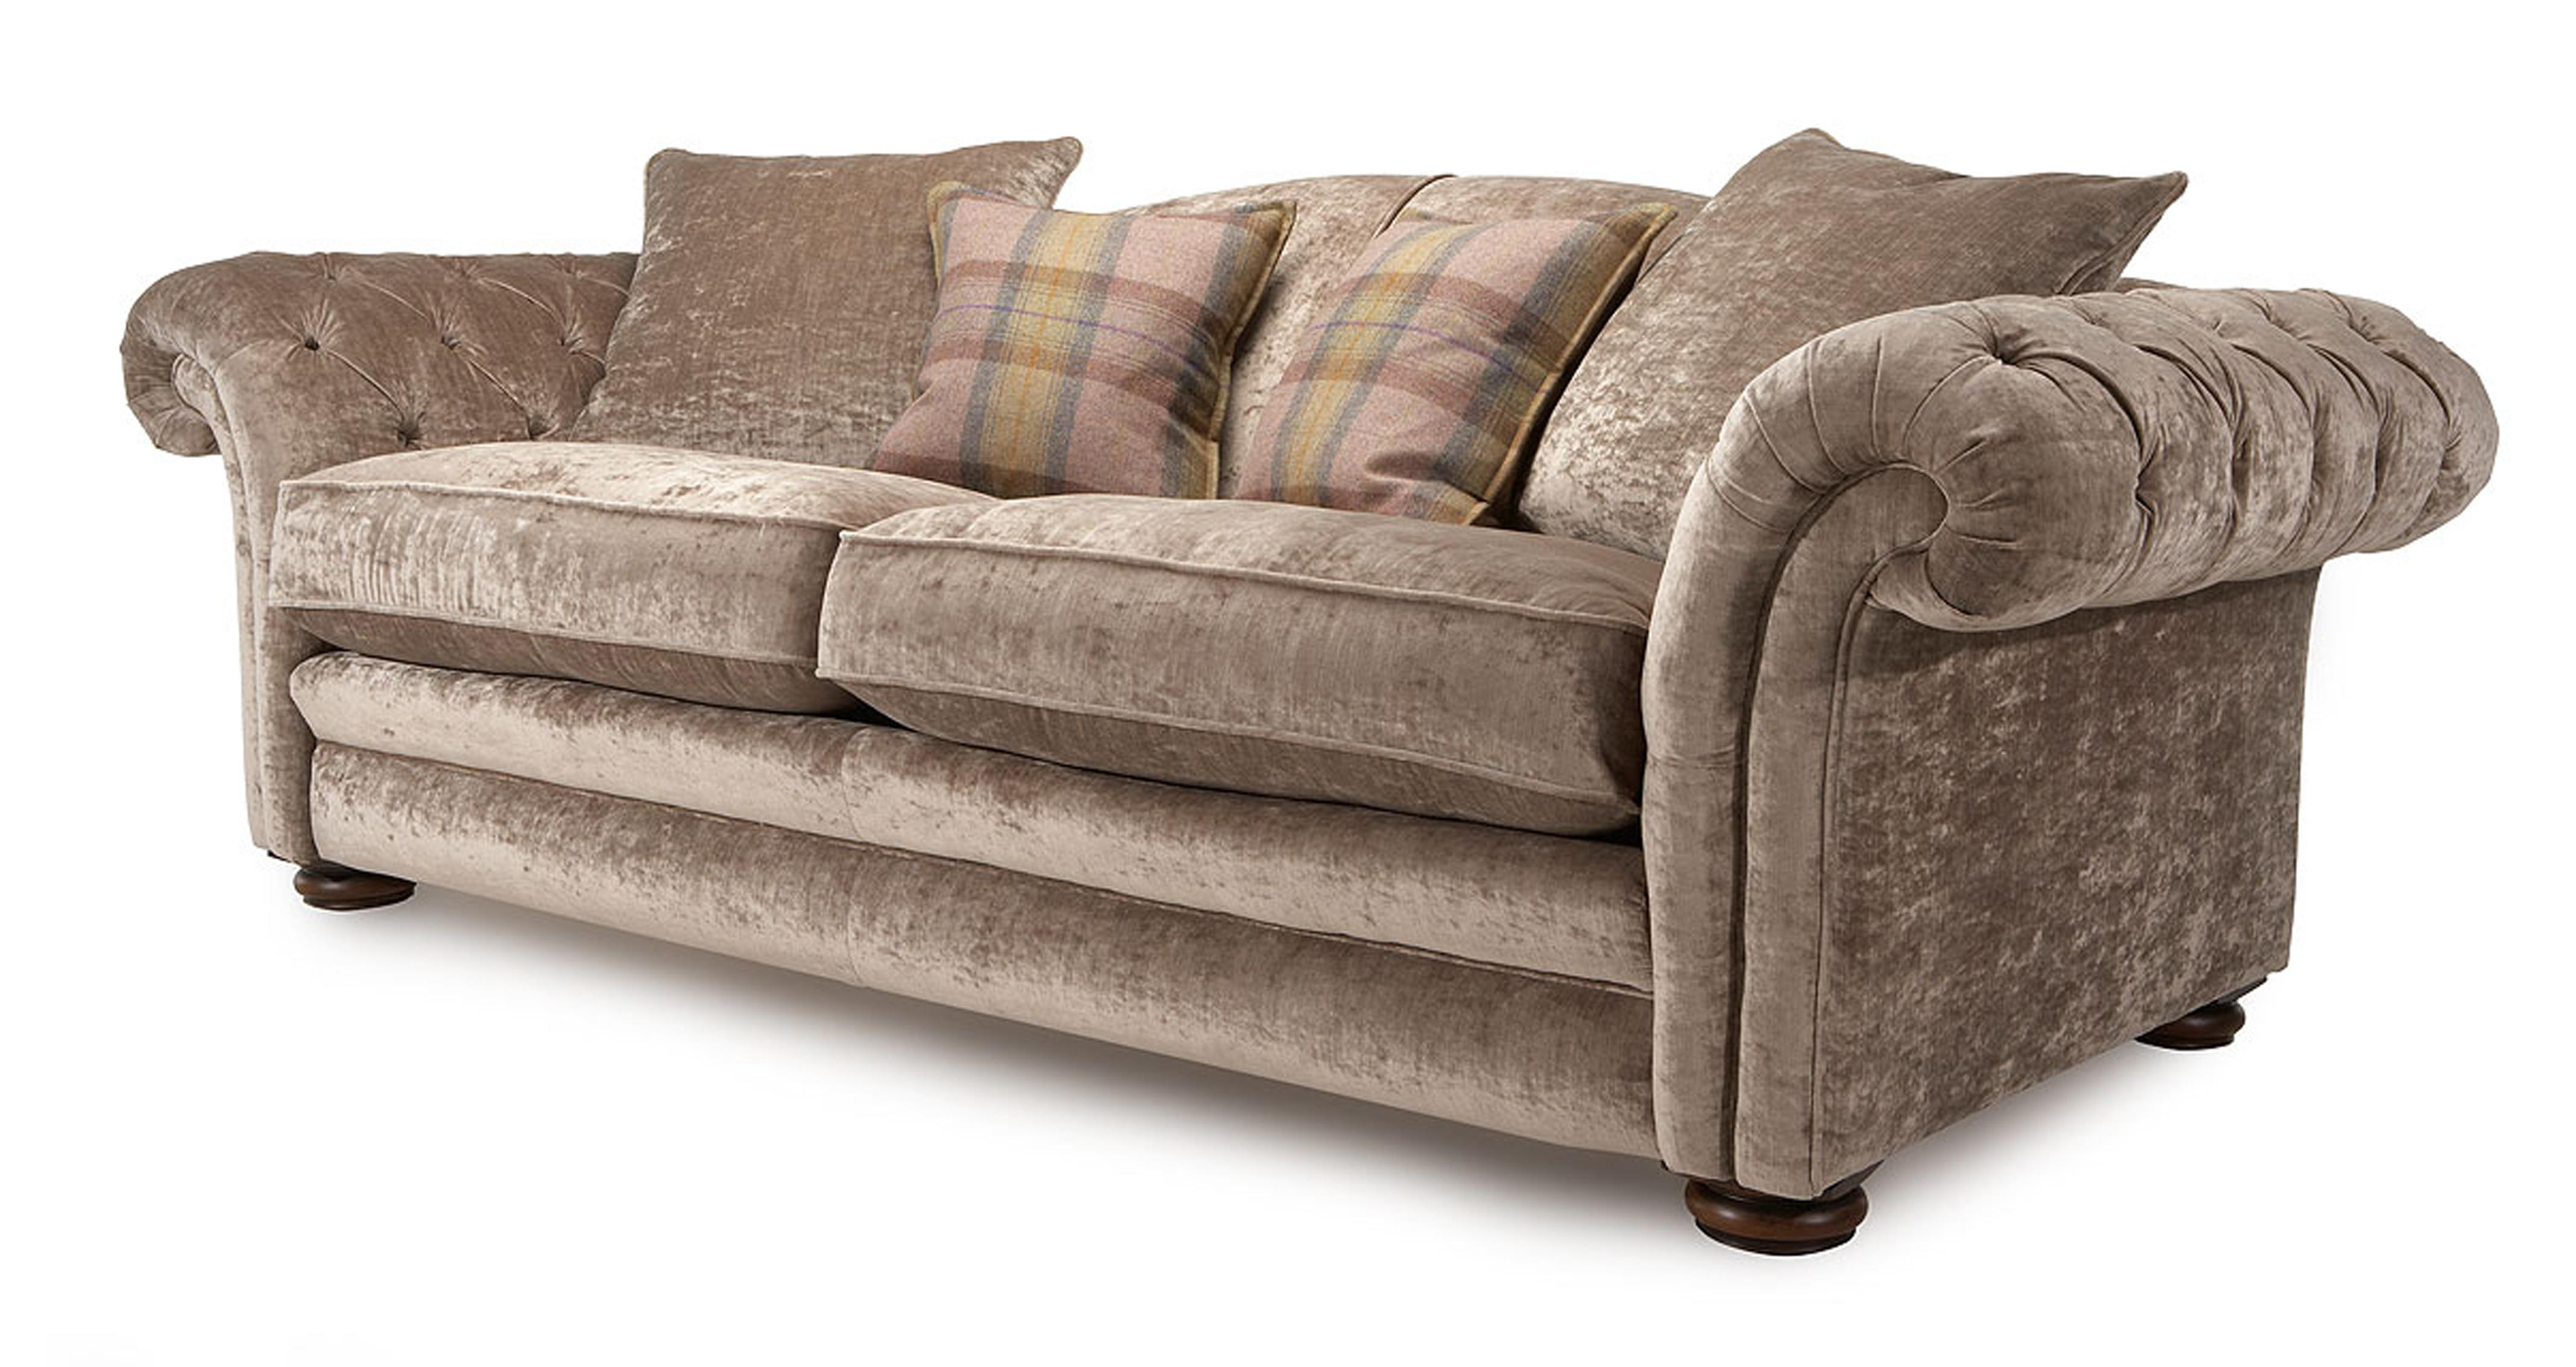 new sofas dfs furniture row sofa mart reviews material freya silver fabric 4 seater